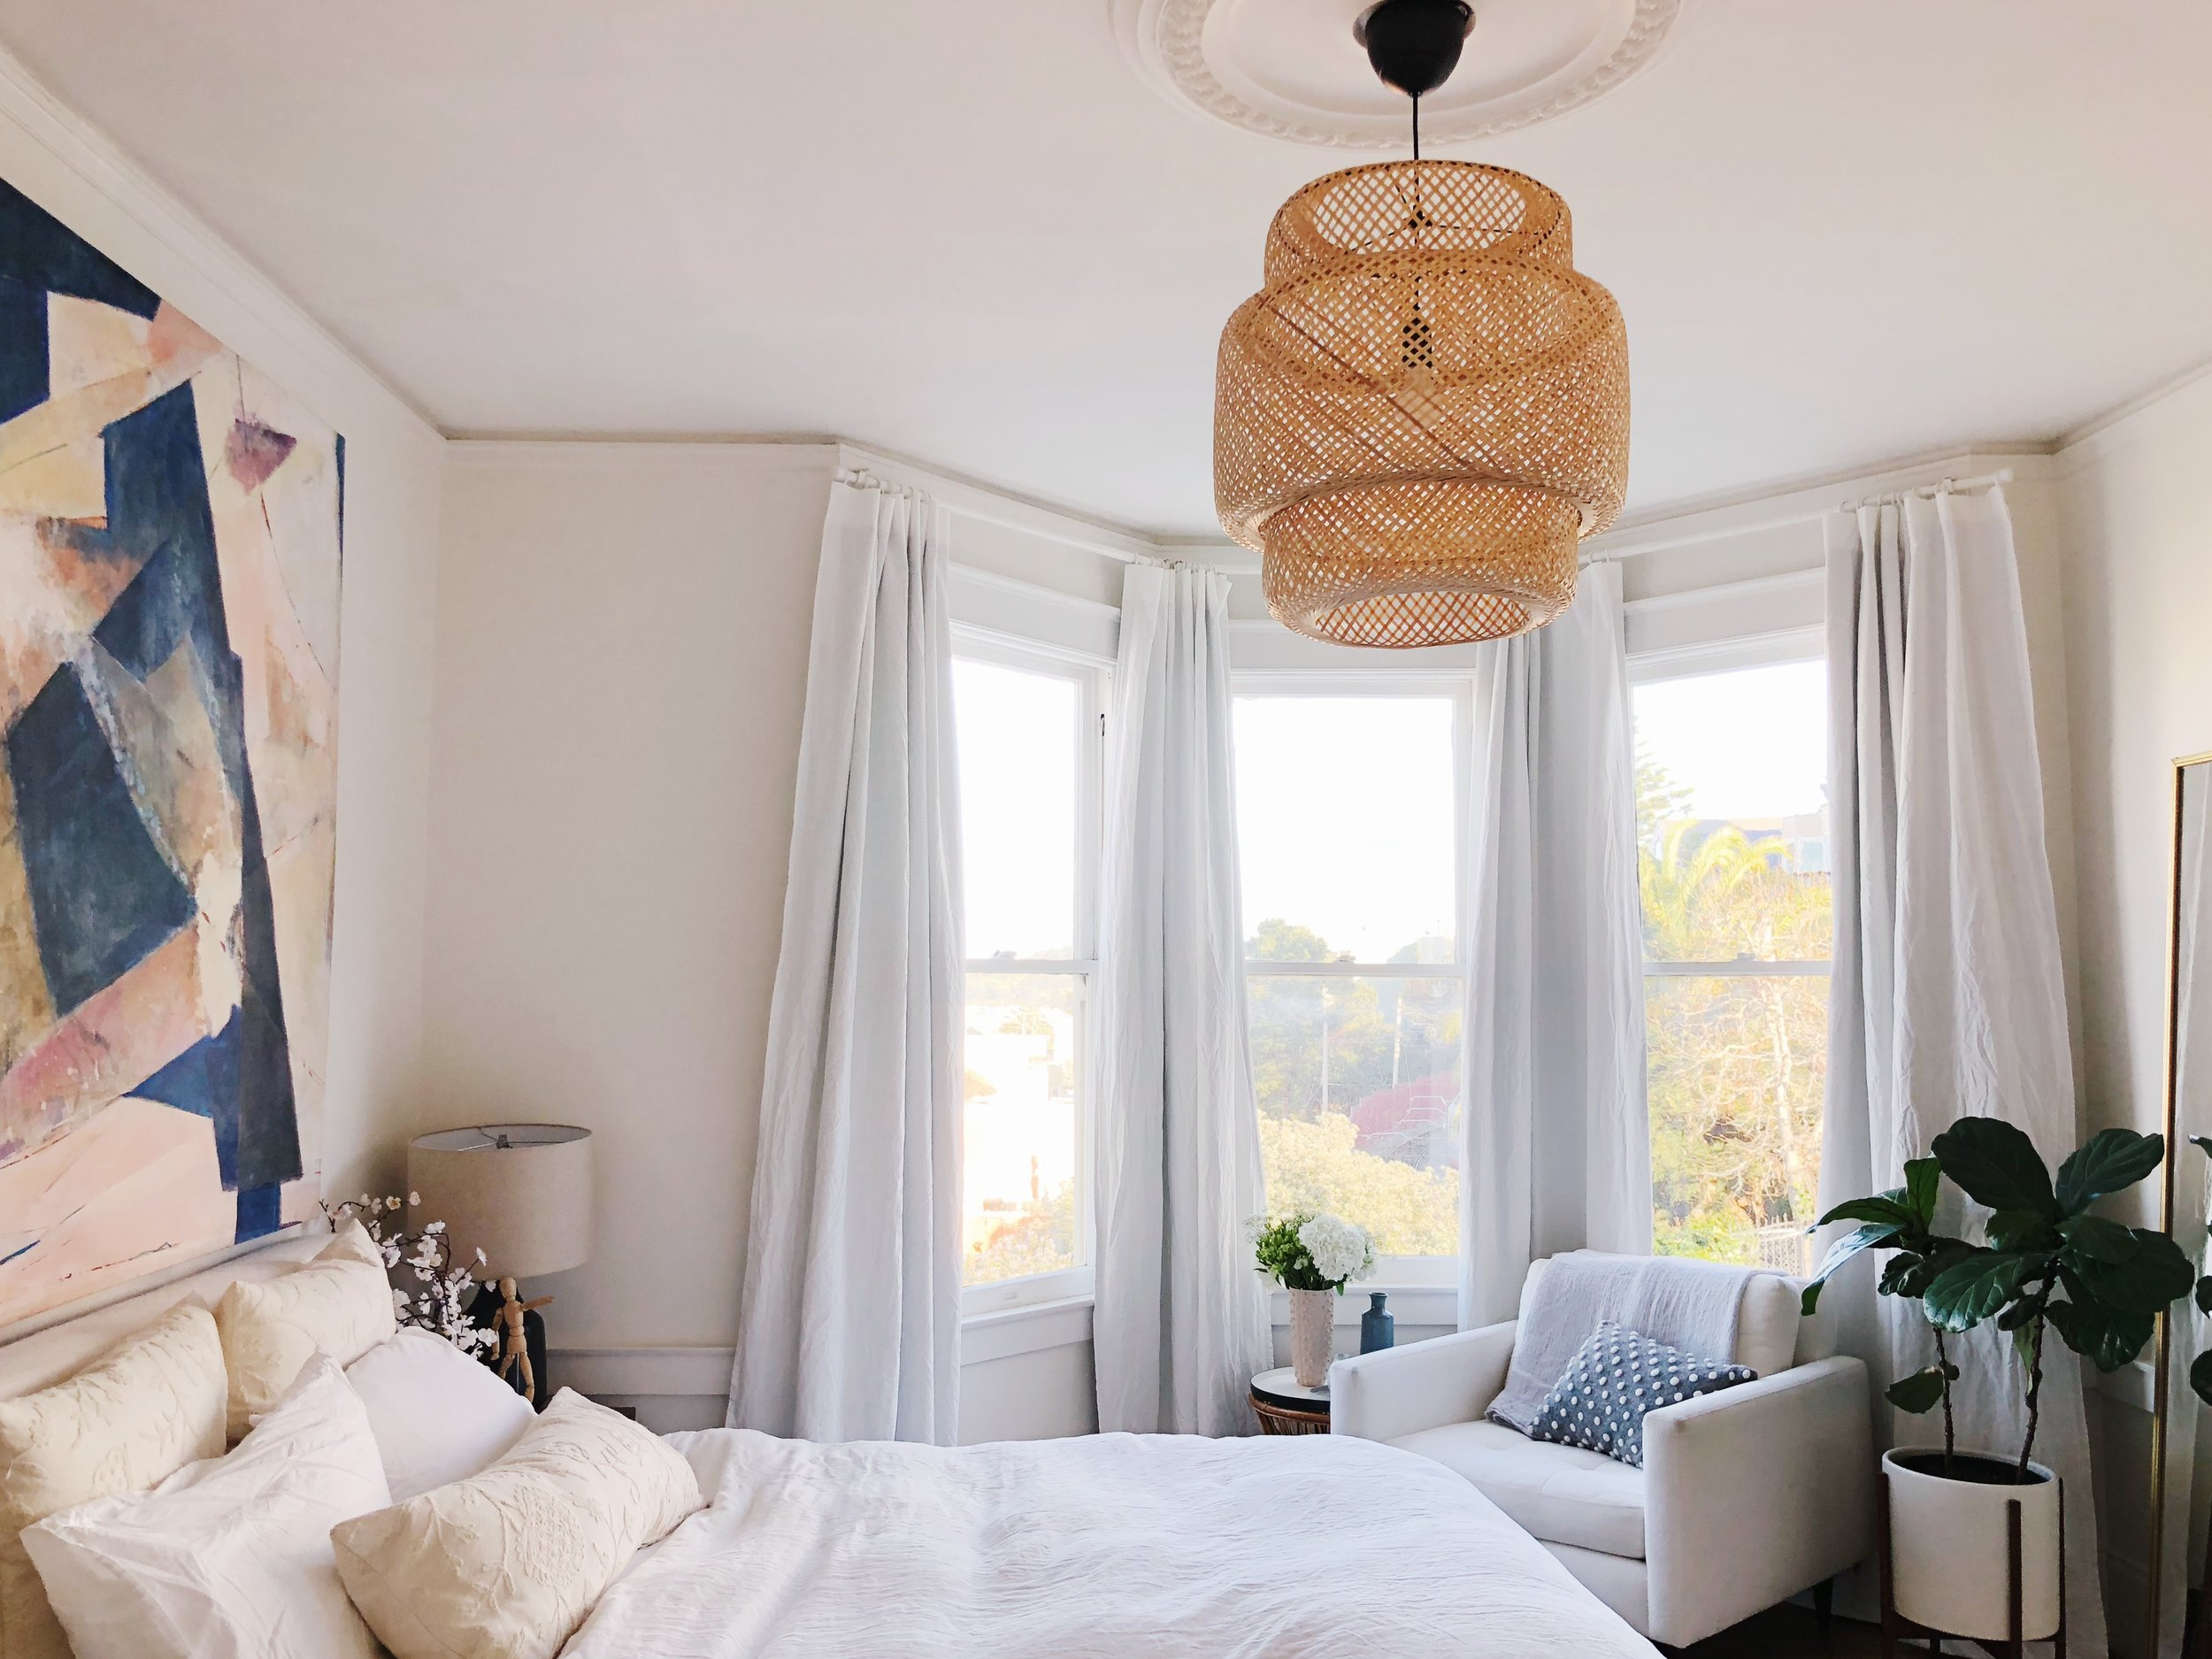 Hanging Curtains On Walls Without Windows How To Hang Blackout Curtains On A Bay Window Eliza Kern Design